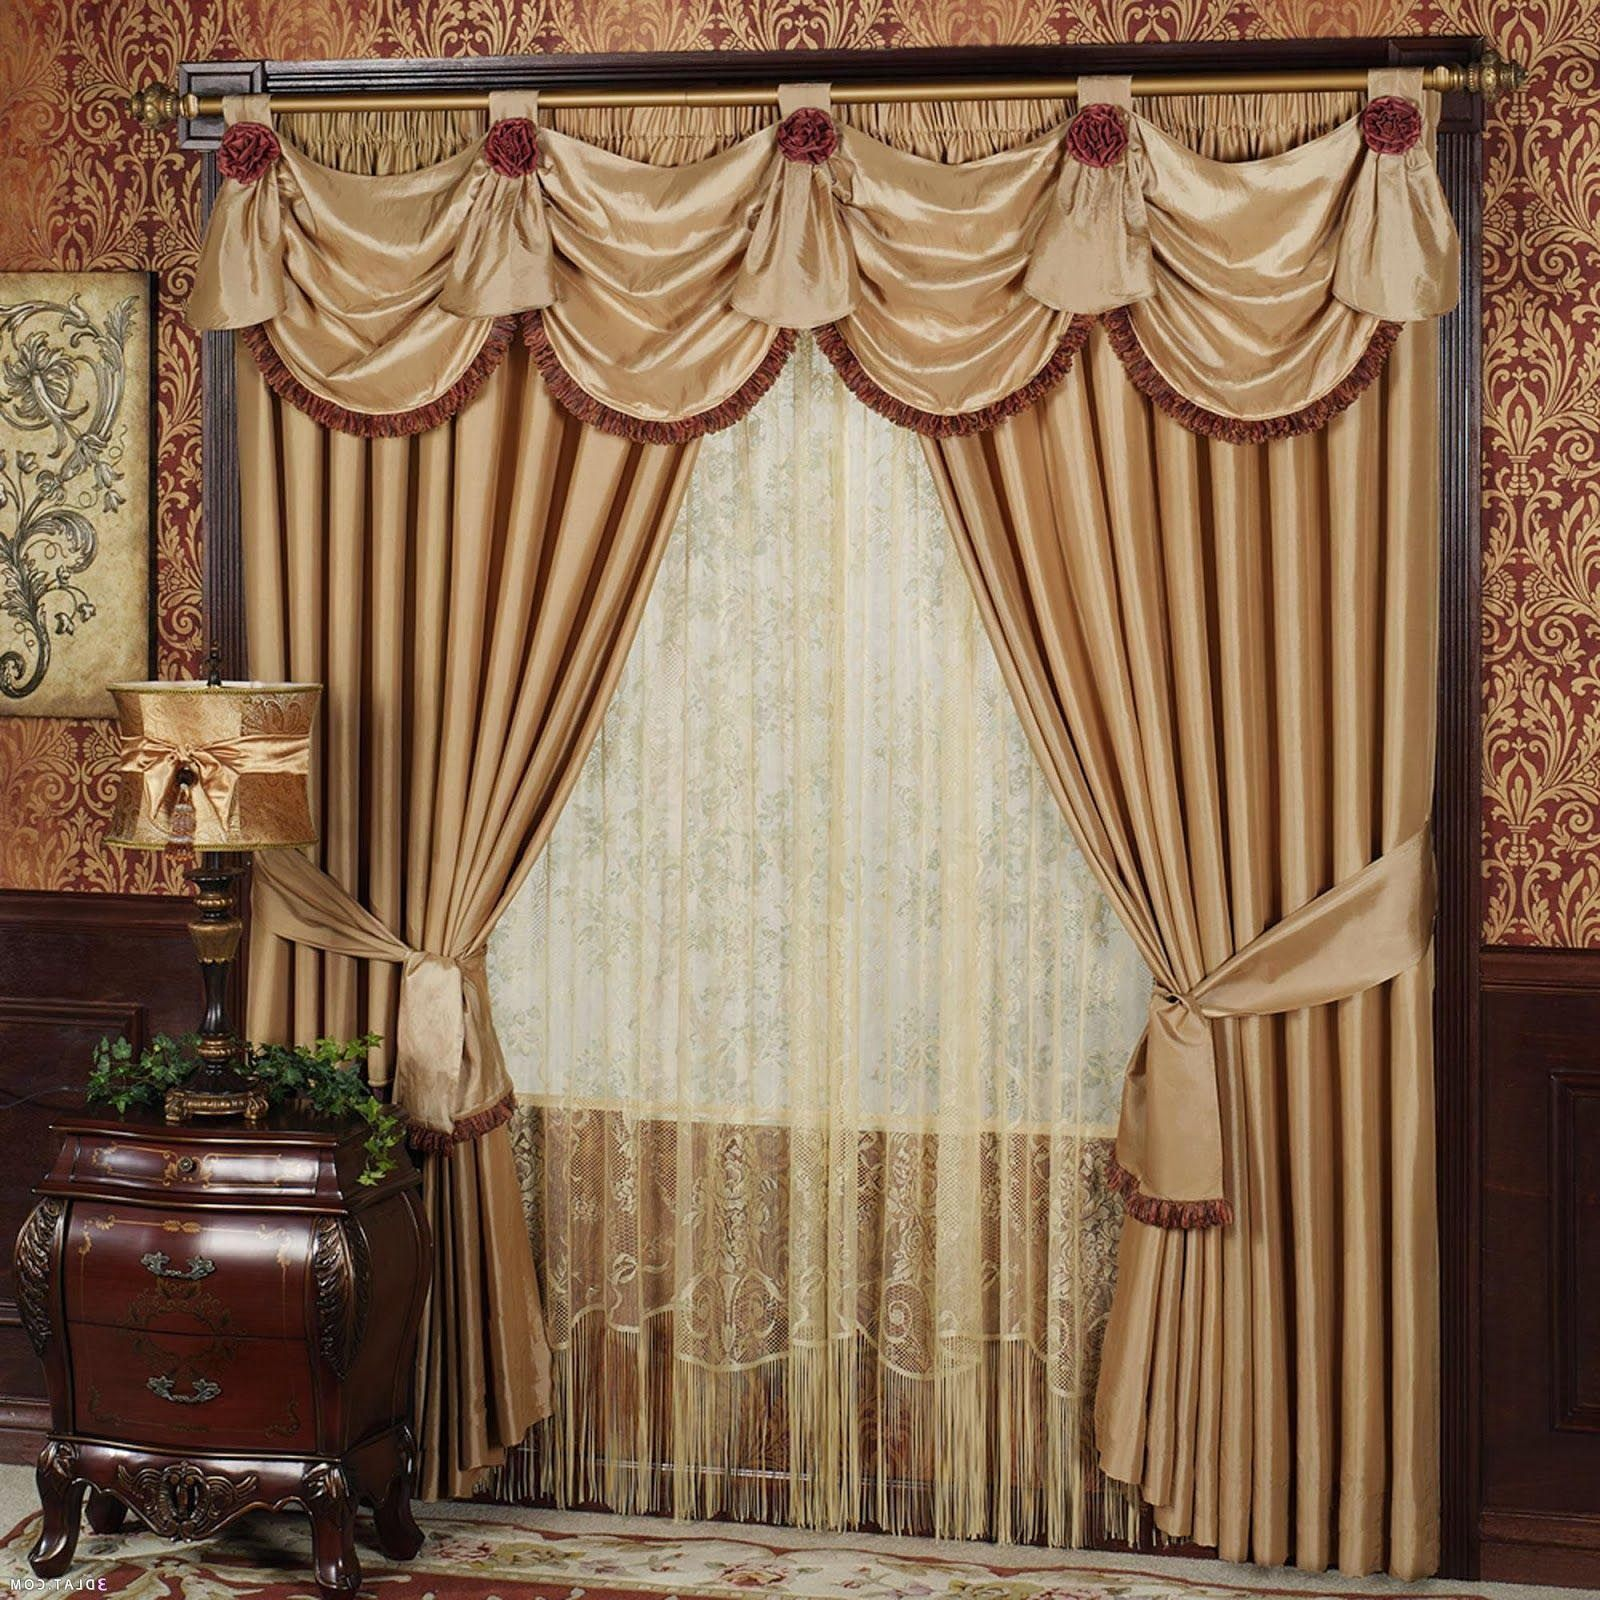 Living Room Curtain Design Beauteous Living Room Drapes With Valances  Valances  Pinterest  Valance Review